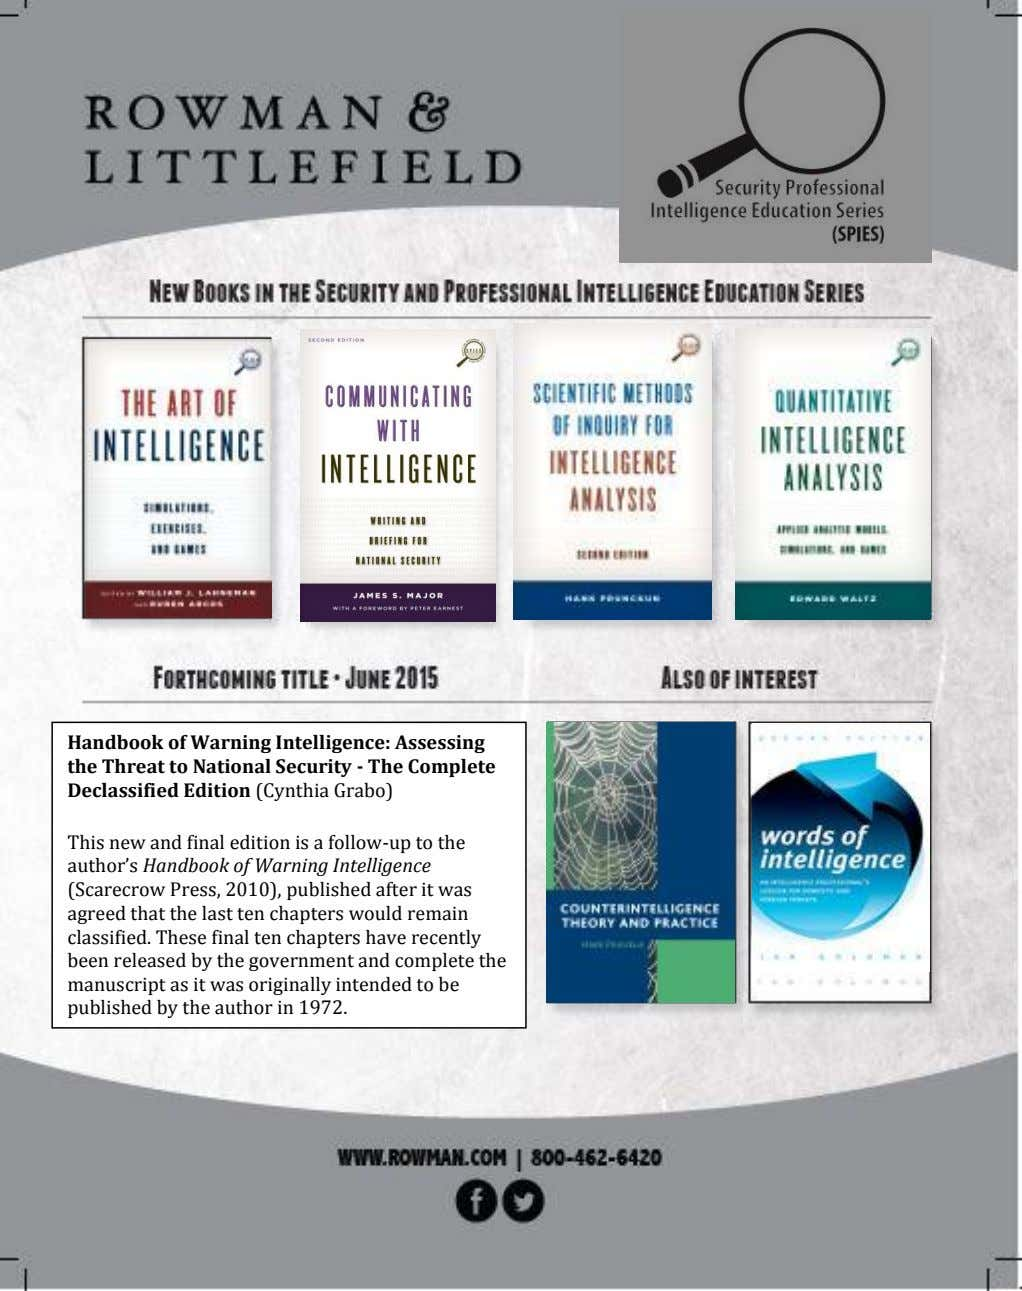 Handbook of Warning Intelligence: Assessing the Threat to National Security - The Complete Declassified Edition